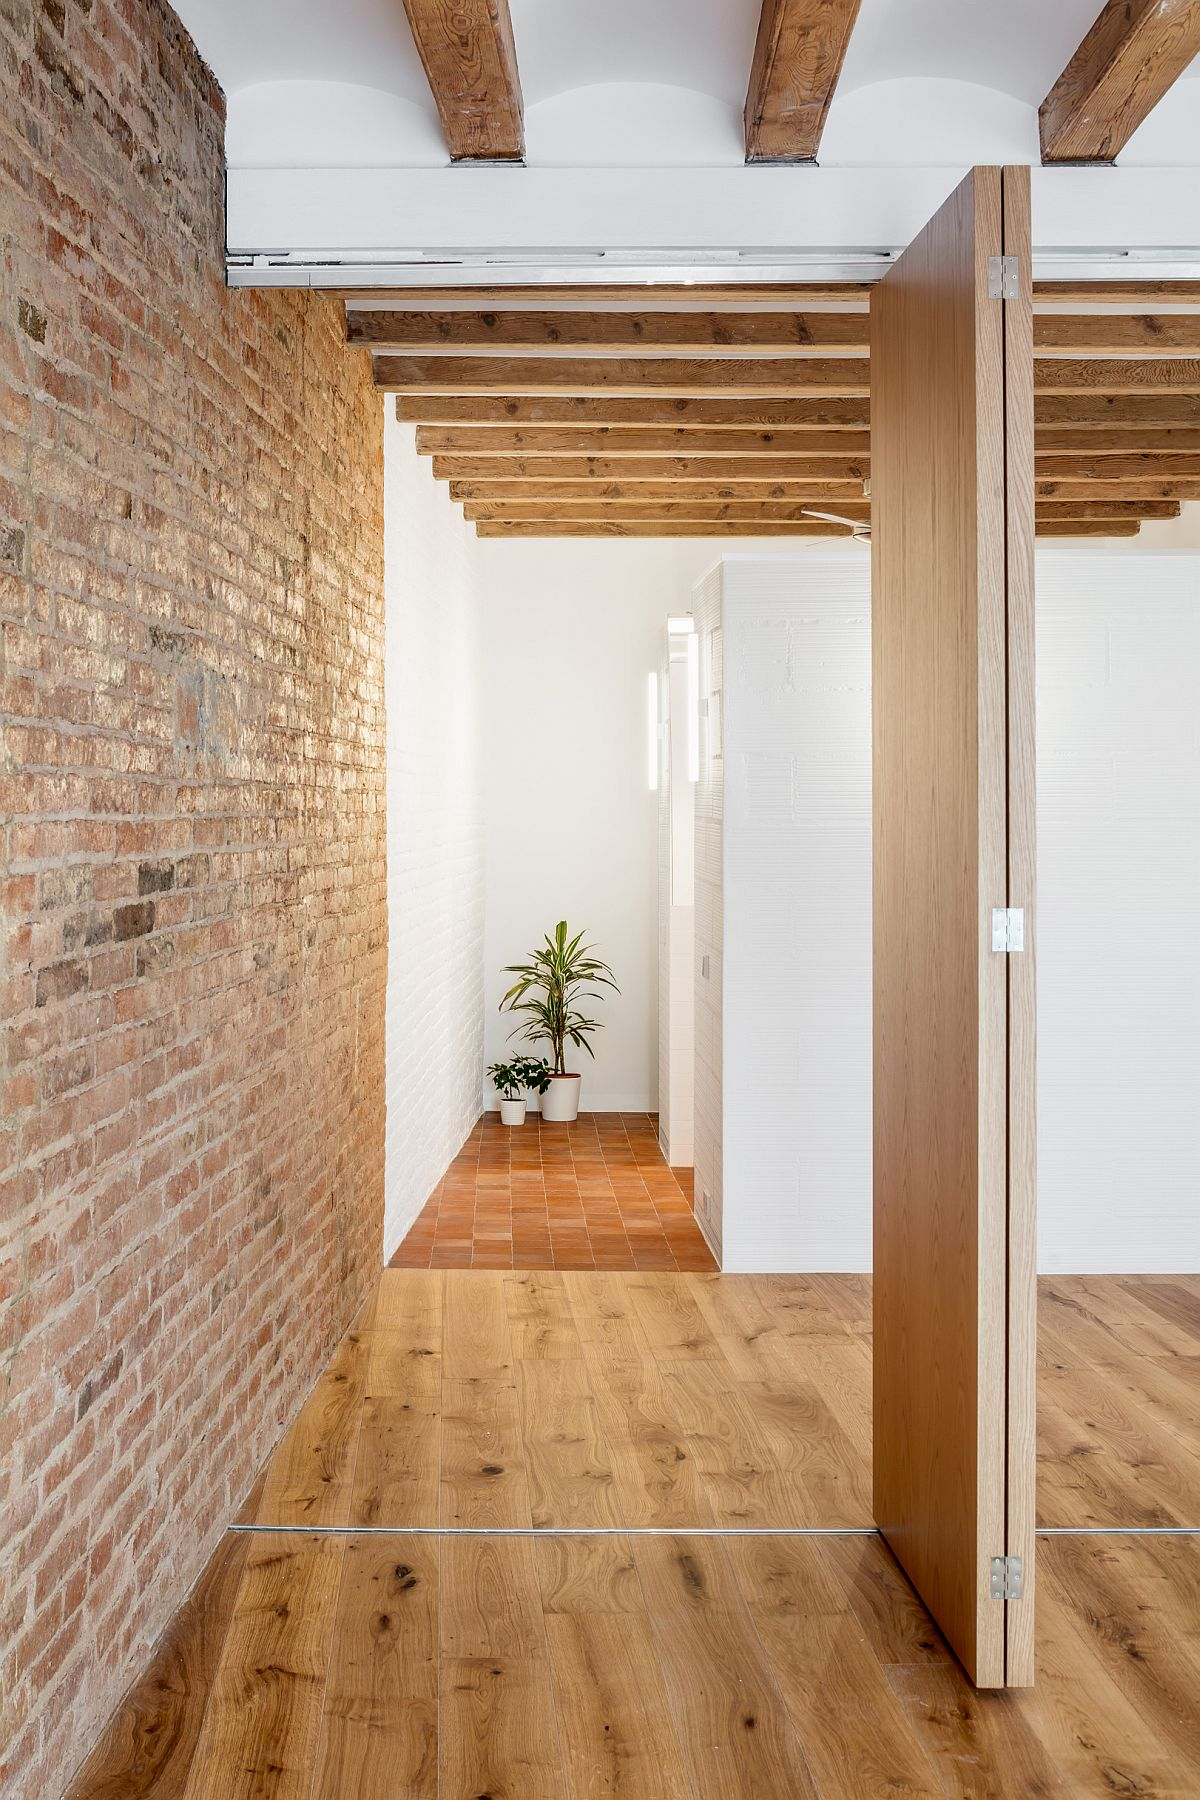 Replacing internal walls with folding wooden doors inside the small apartment